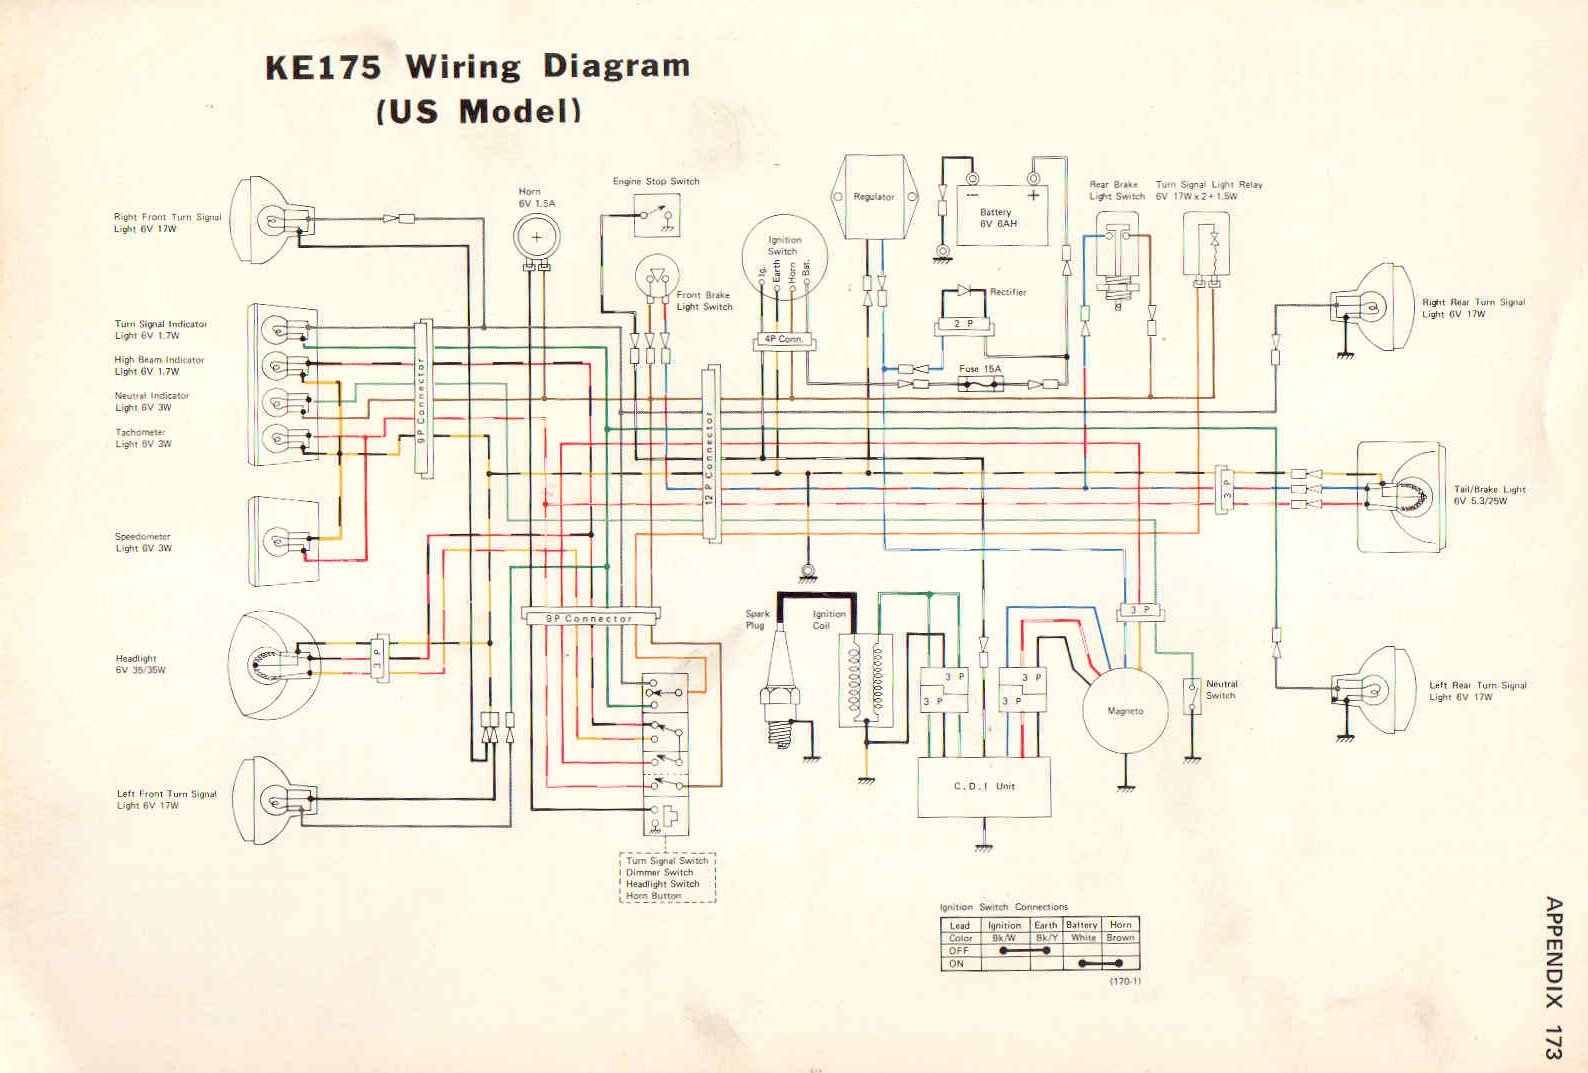 Ke175 Wiring Diagram Diagrams For Dummies 77 Sportster How To Motorcycle Repair 76 78 Rh Howtomotorcyclerepair Com 1977 Kawasaki Ke